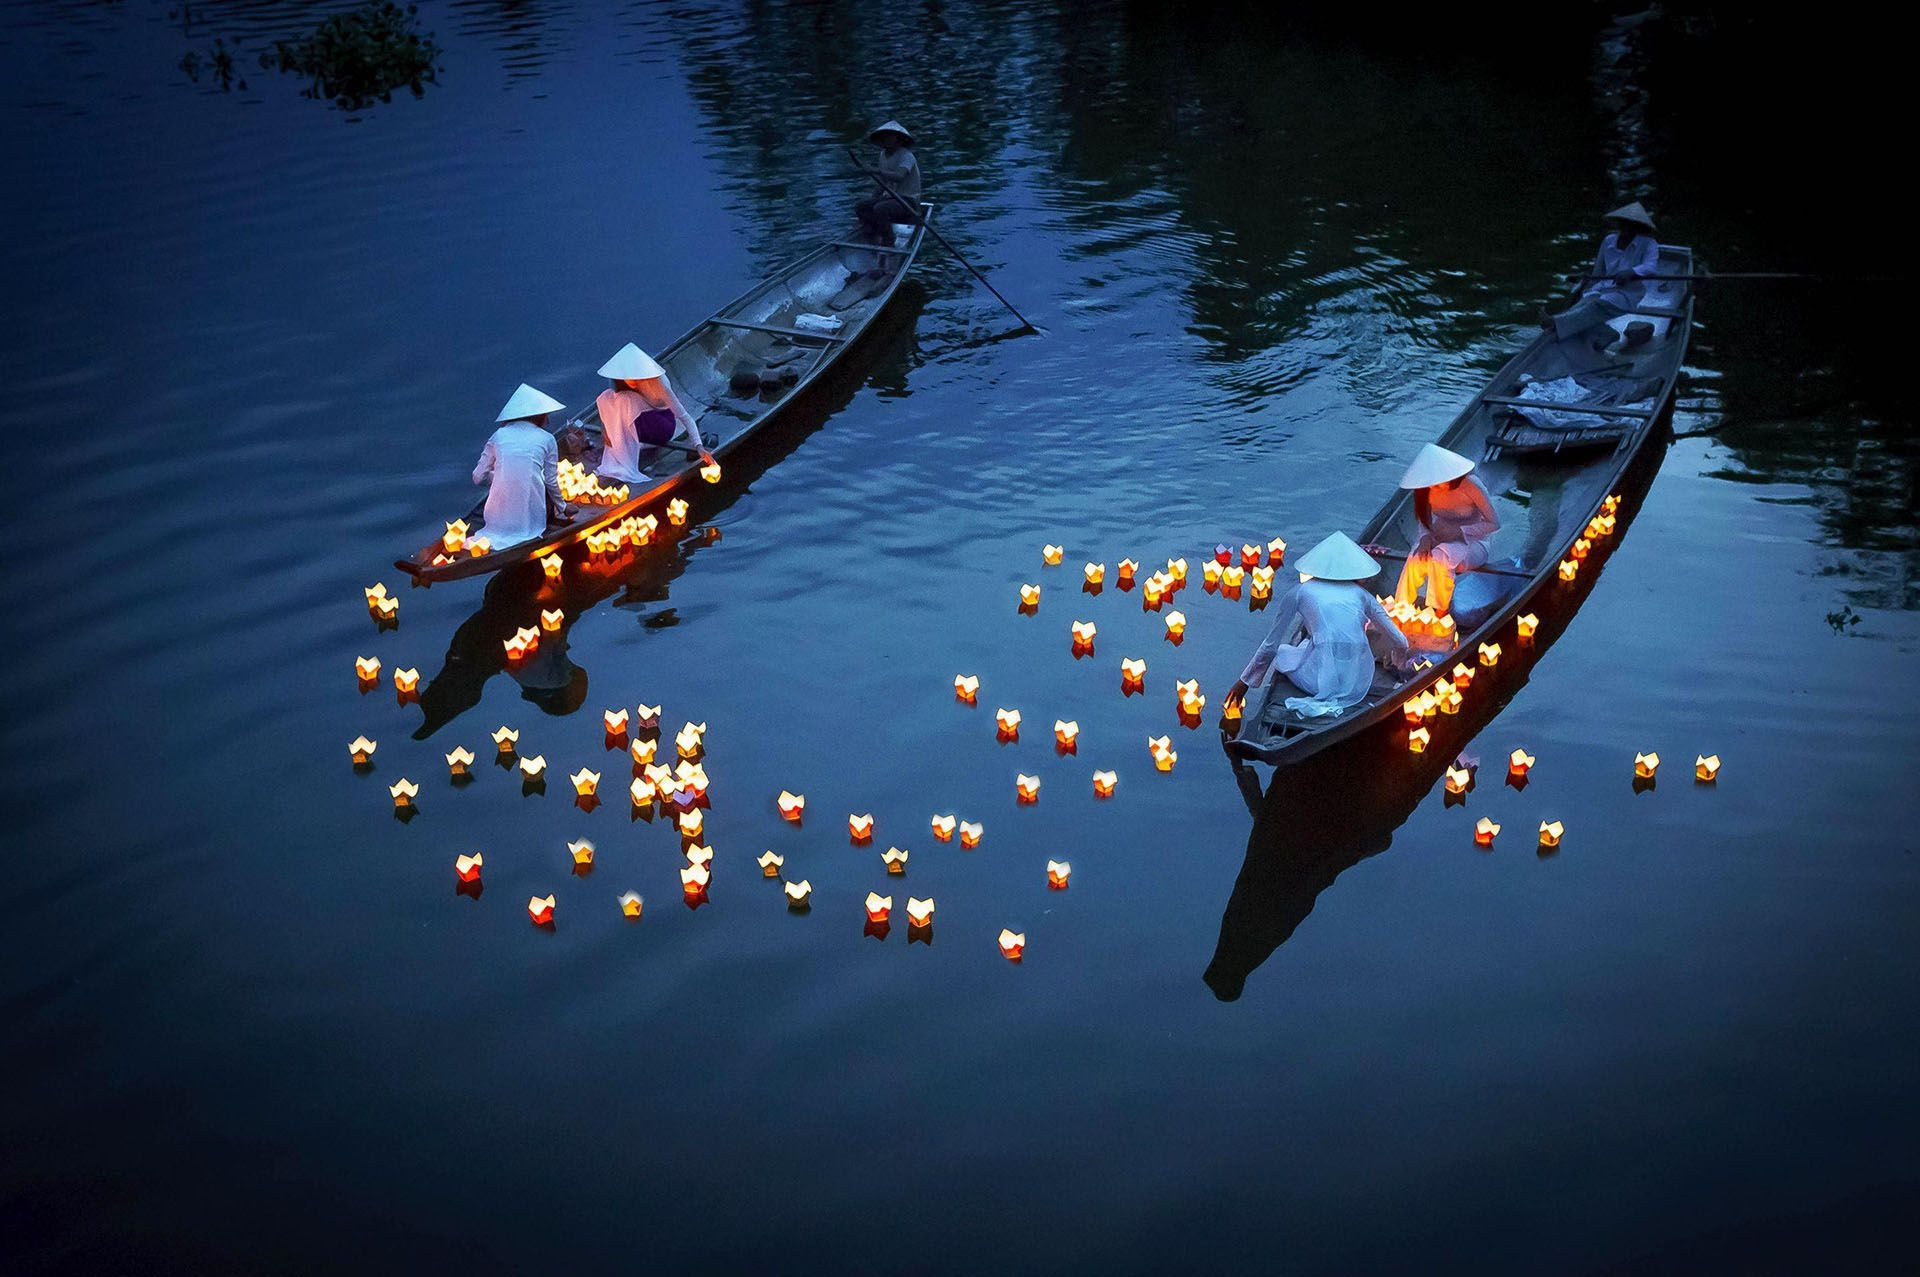 Photograph by Phạm Tỵ , National Geographic